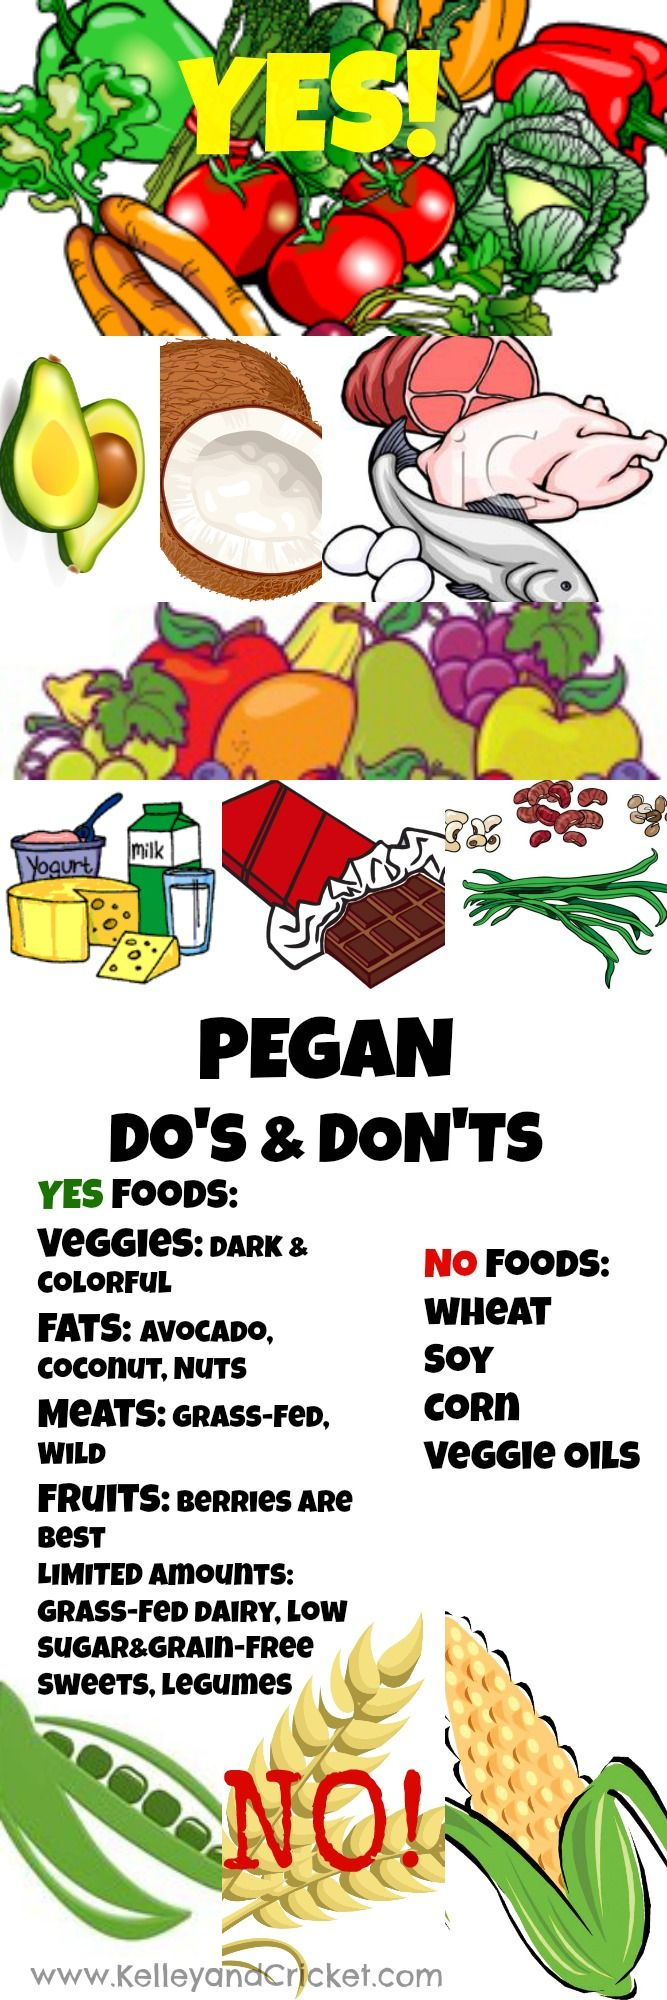 What is a Pegan Diet? It's basically a Paleo Diet with a focus on veggies, nuts, healthy fats and fruit.